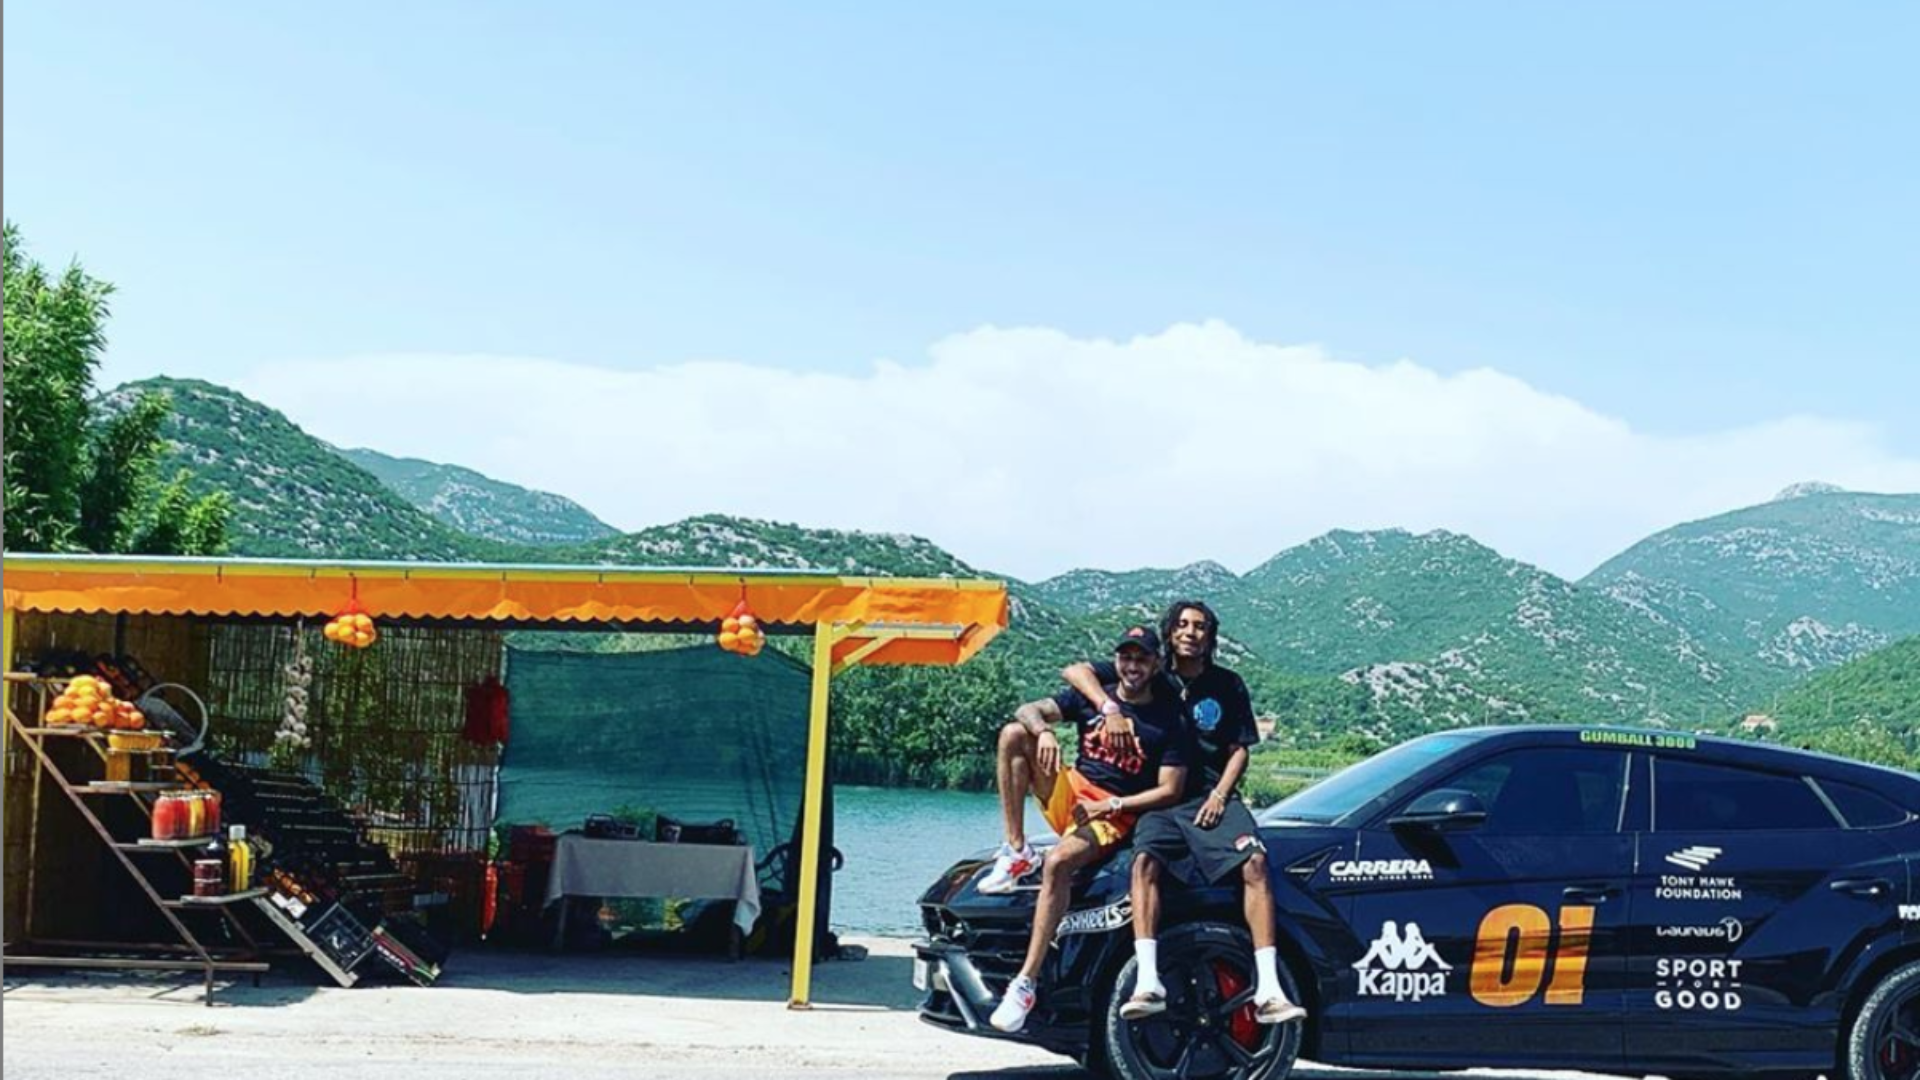 Swizz Beatz Is On A European Road Trip With His Son And It's Melting Our Hearts